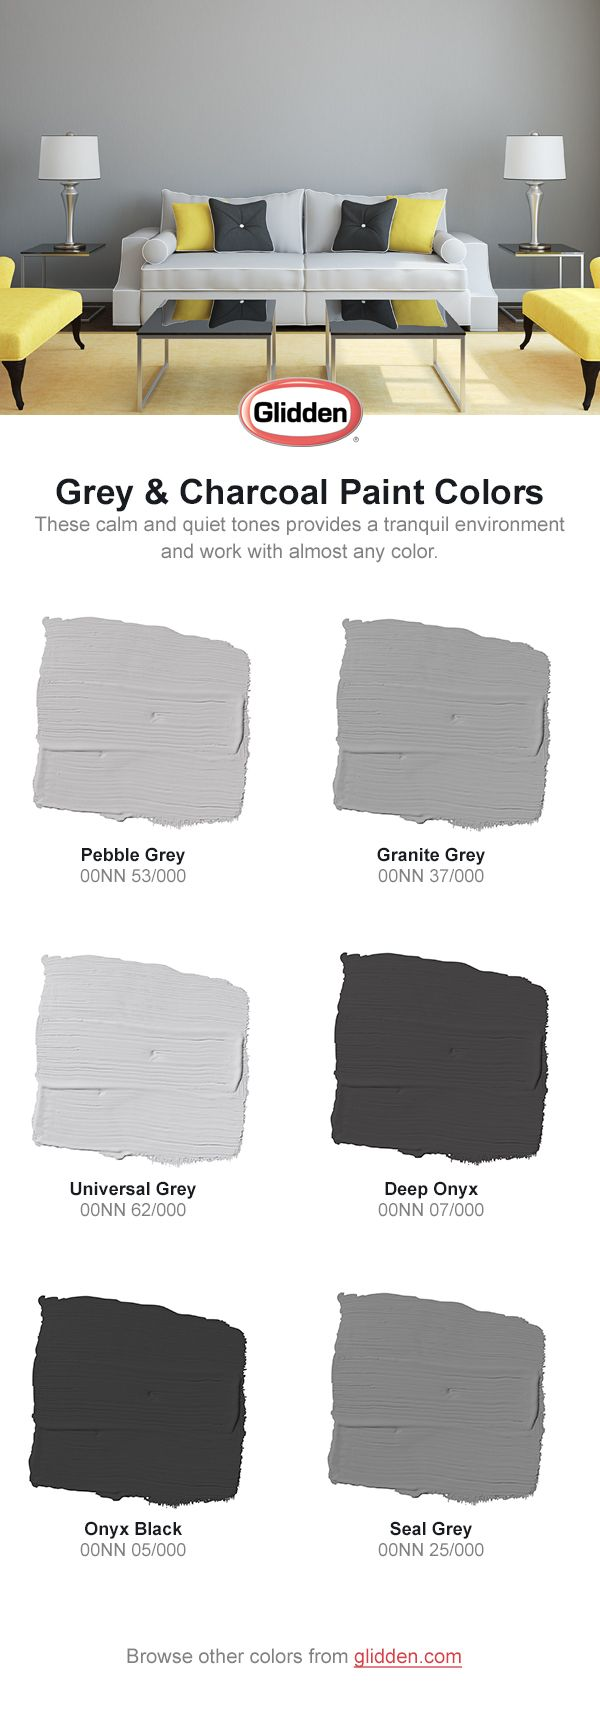 These calm and quiet tones provides a tranquil environment and work with almost any color. Click to view the colors in this paint collection, and picture them in your home at Glidden.com